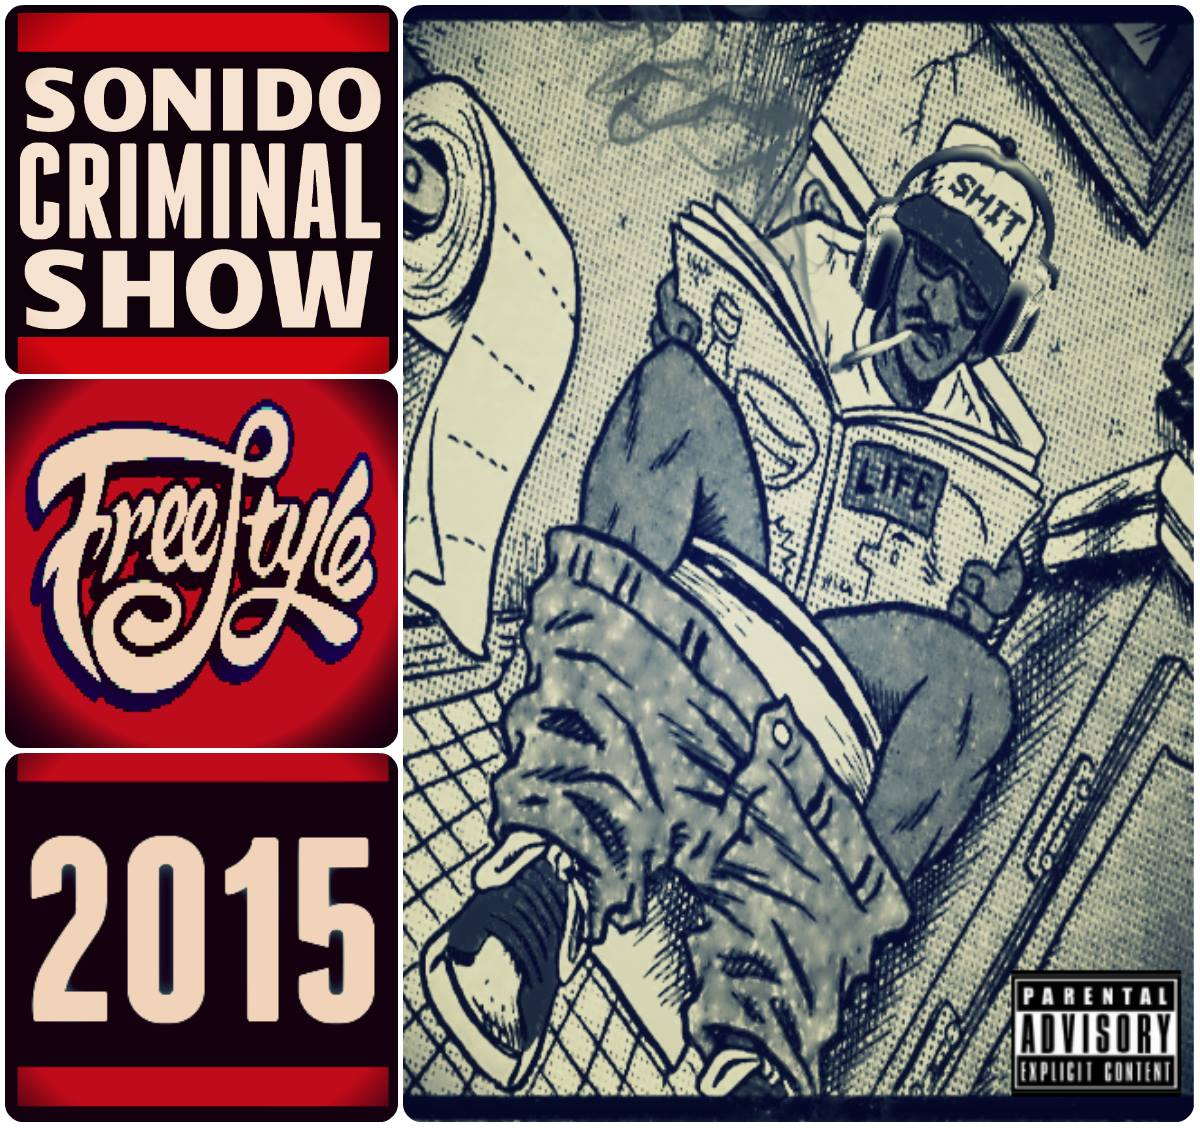 SONIDO CRIMINAL - FREESTYLES VOL. 4 2015 - RAPPIN WITH JOE - 2014 -2015